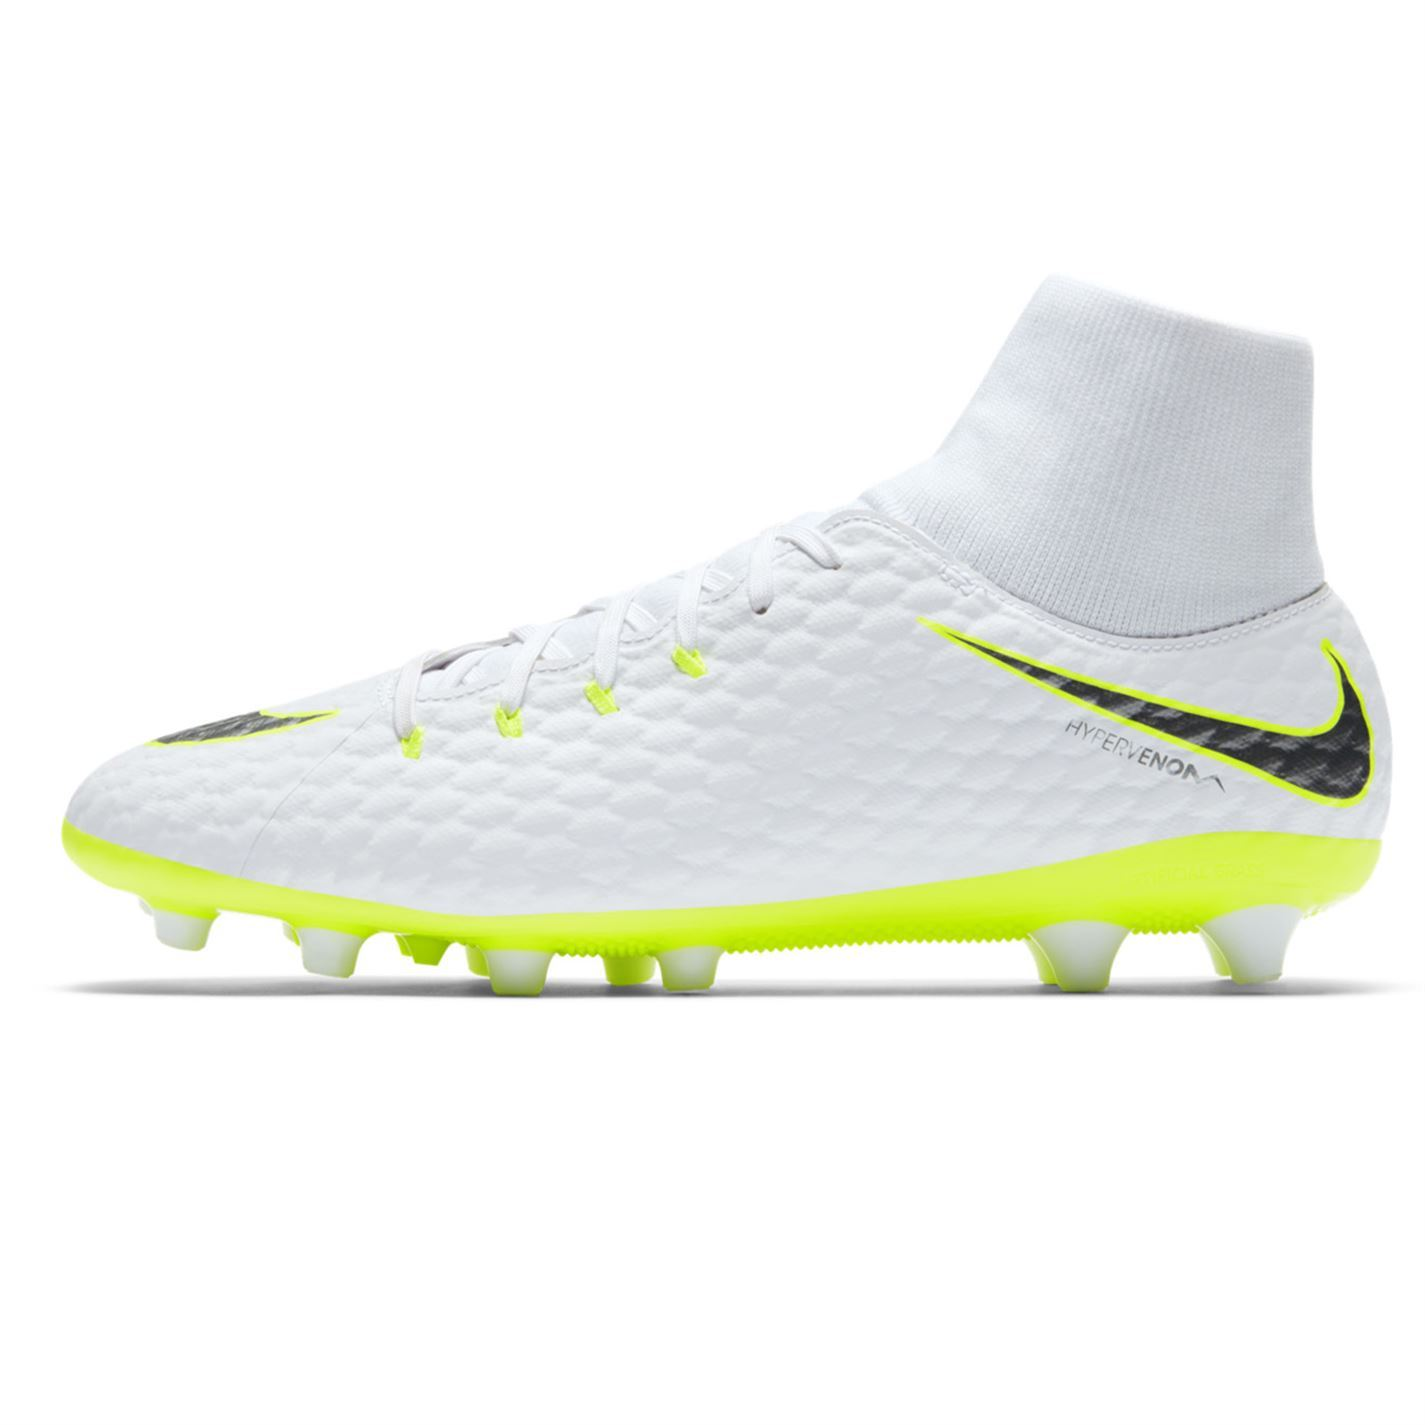 b352633a3 ... Nike Hypervenom Phantom 3 Academy DF AG Football Boots Mens Soccer  Shoes Cleats